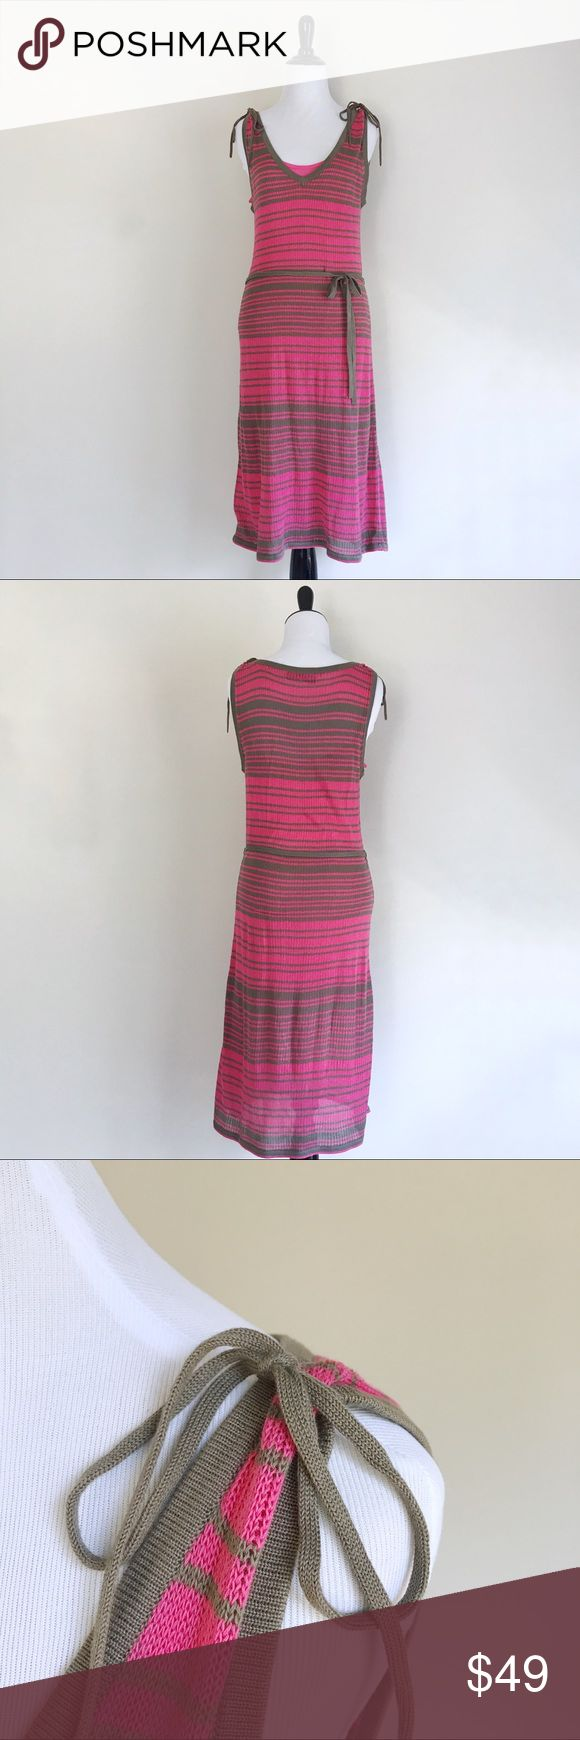 "❥ Trina Turk Knit Dress Trina Turk knit dress. Lined with solid pink inner slip. Ties on shoulders and waist.   🔸Size: M 🔸Color: Pink and brown stripes 🔸Condition: Great, worn a few times 🔸16.5"" bust, 42"" length measured flat 🔹Instagram: Missoh_J Trina Turk Dresses Maxi"